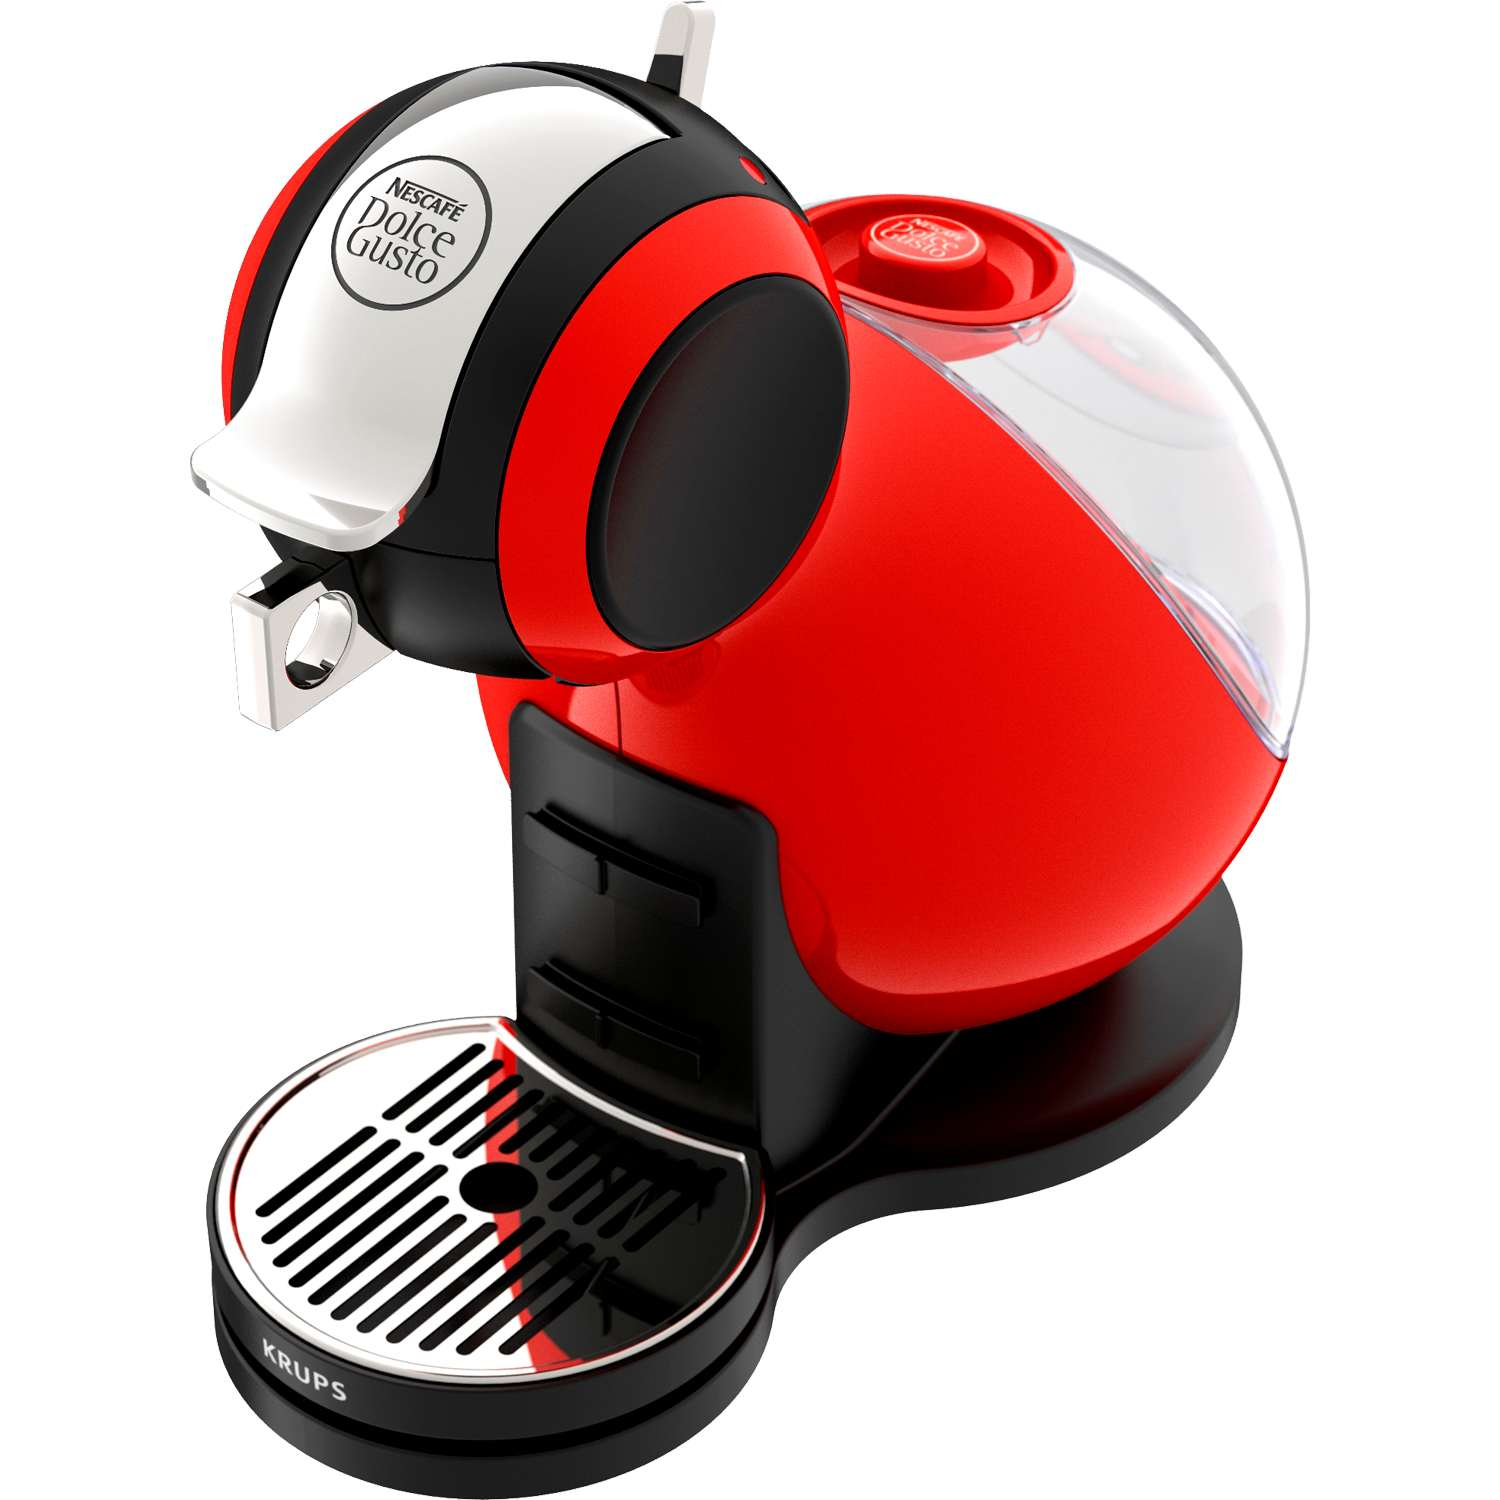 krups nescafe dolce gusto melody 3 coffee machine 15 bar 1. Black Bedroom Furniture Sets. Home Design Ideas